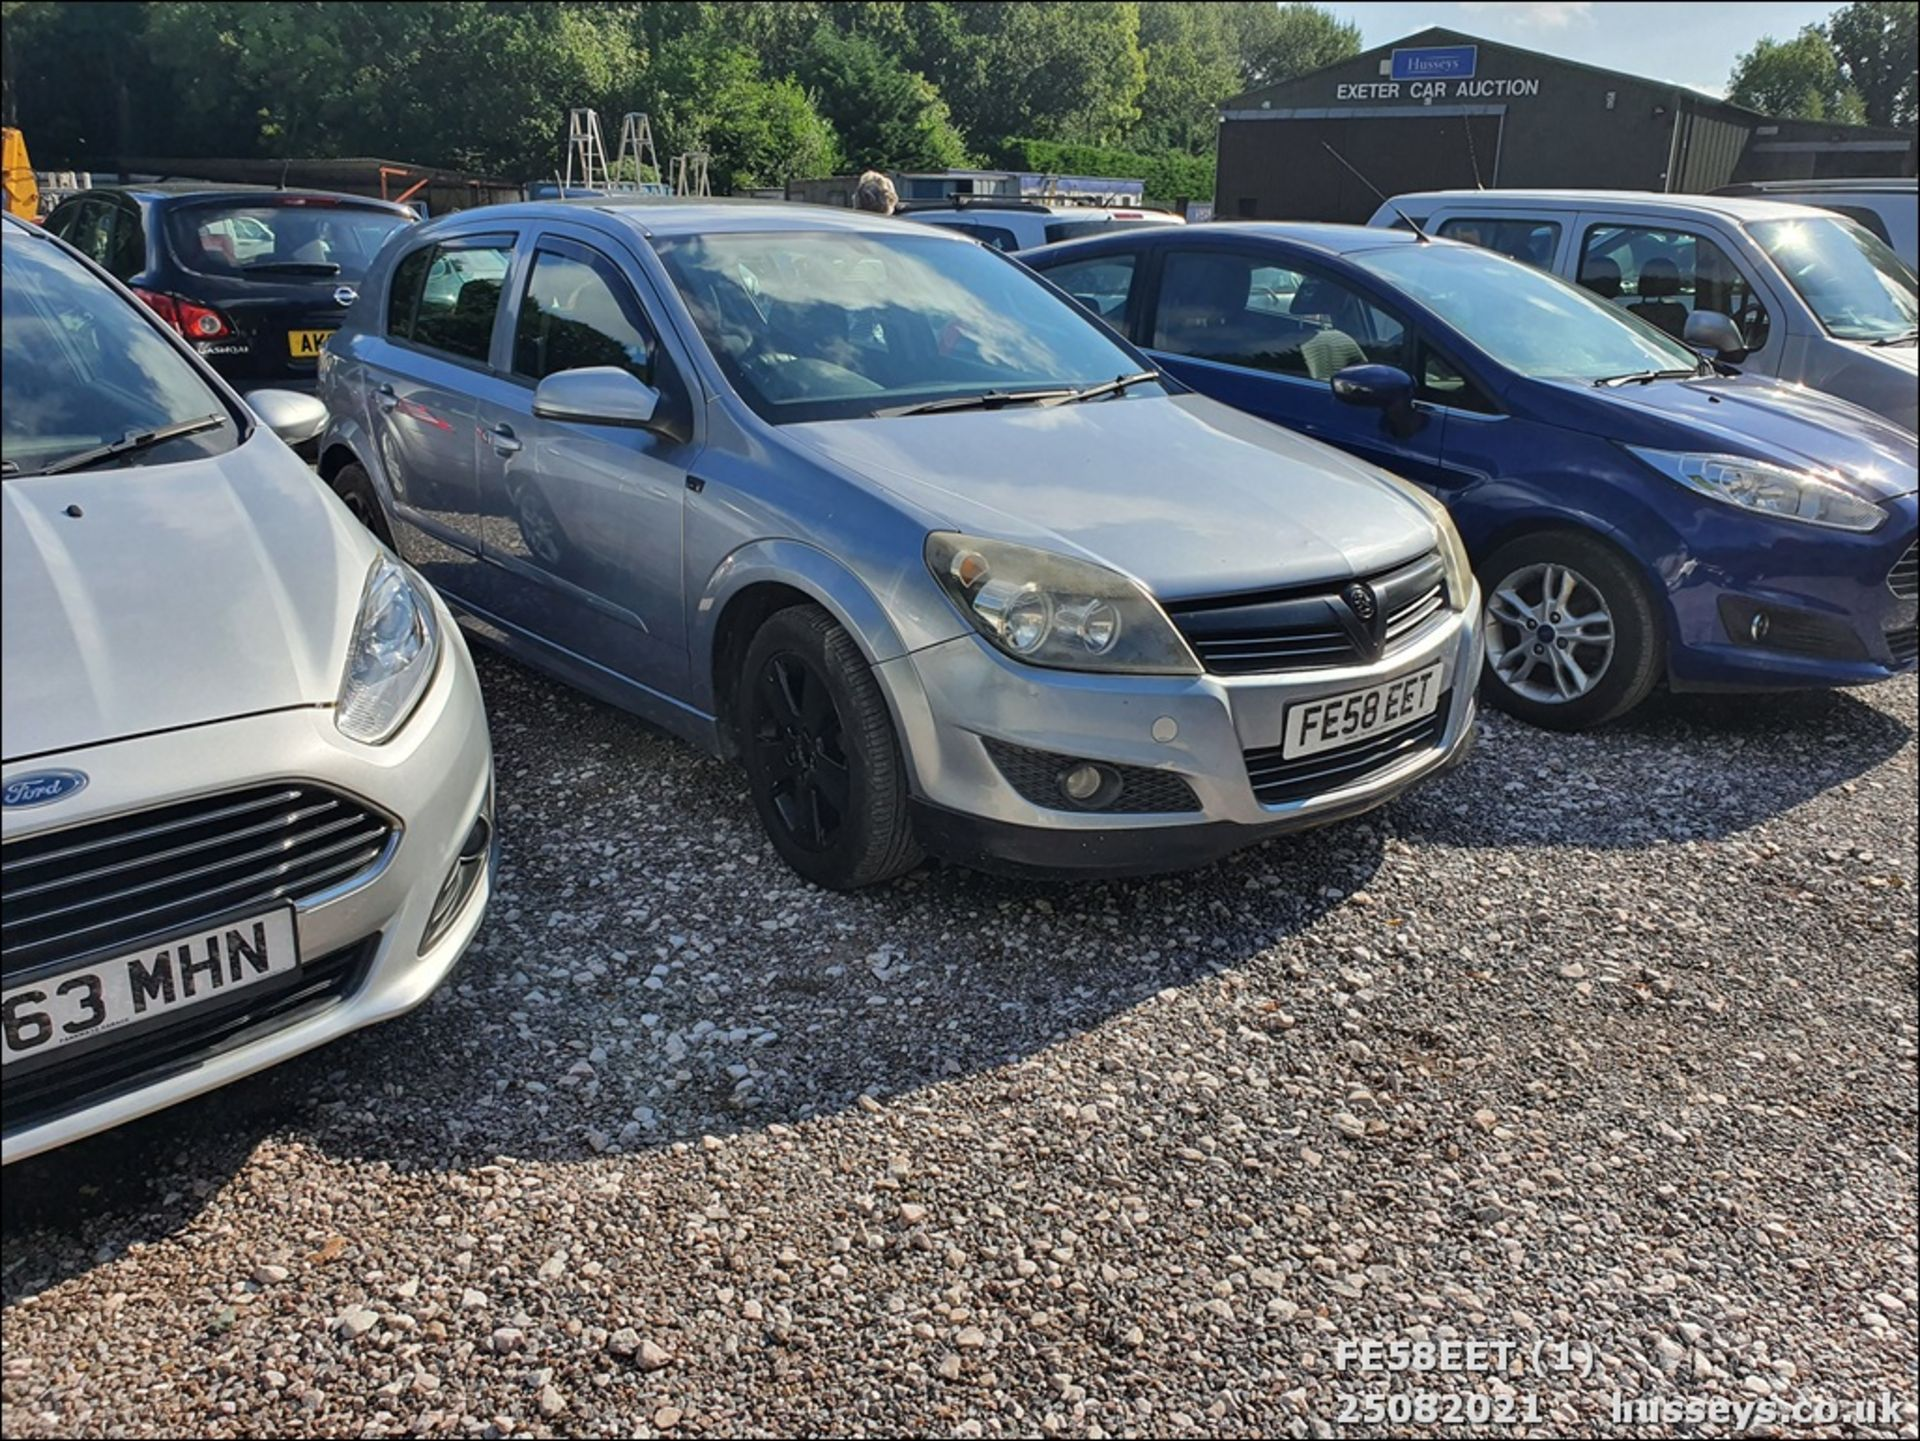 08/58 VAUXHALL ASTRA CLUB CDTI 100 - 1686cc 5dr Hatchback (Silver, 115k) - Image 2 of 15